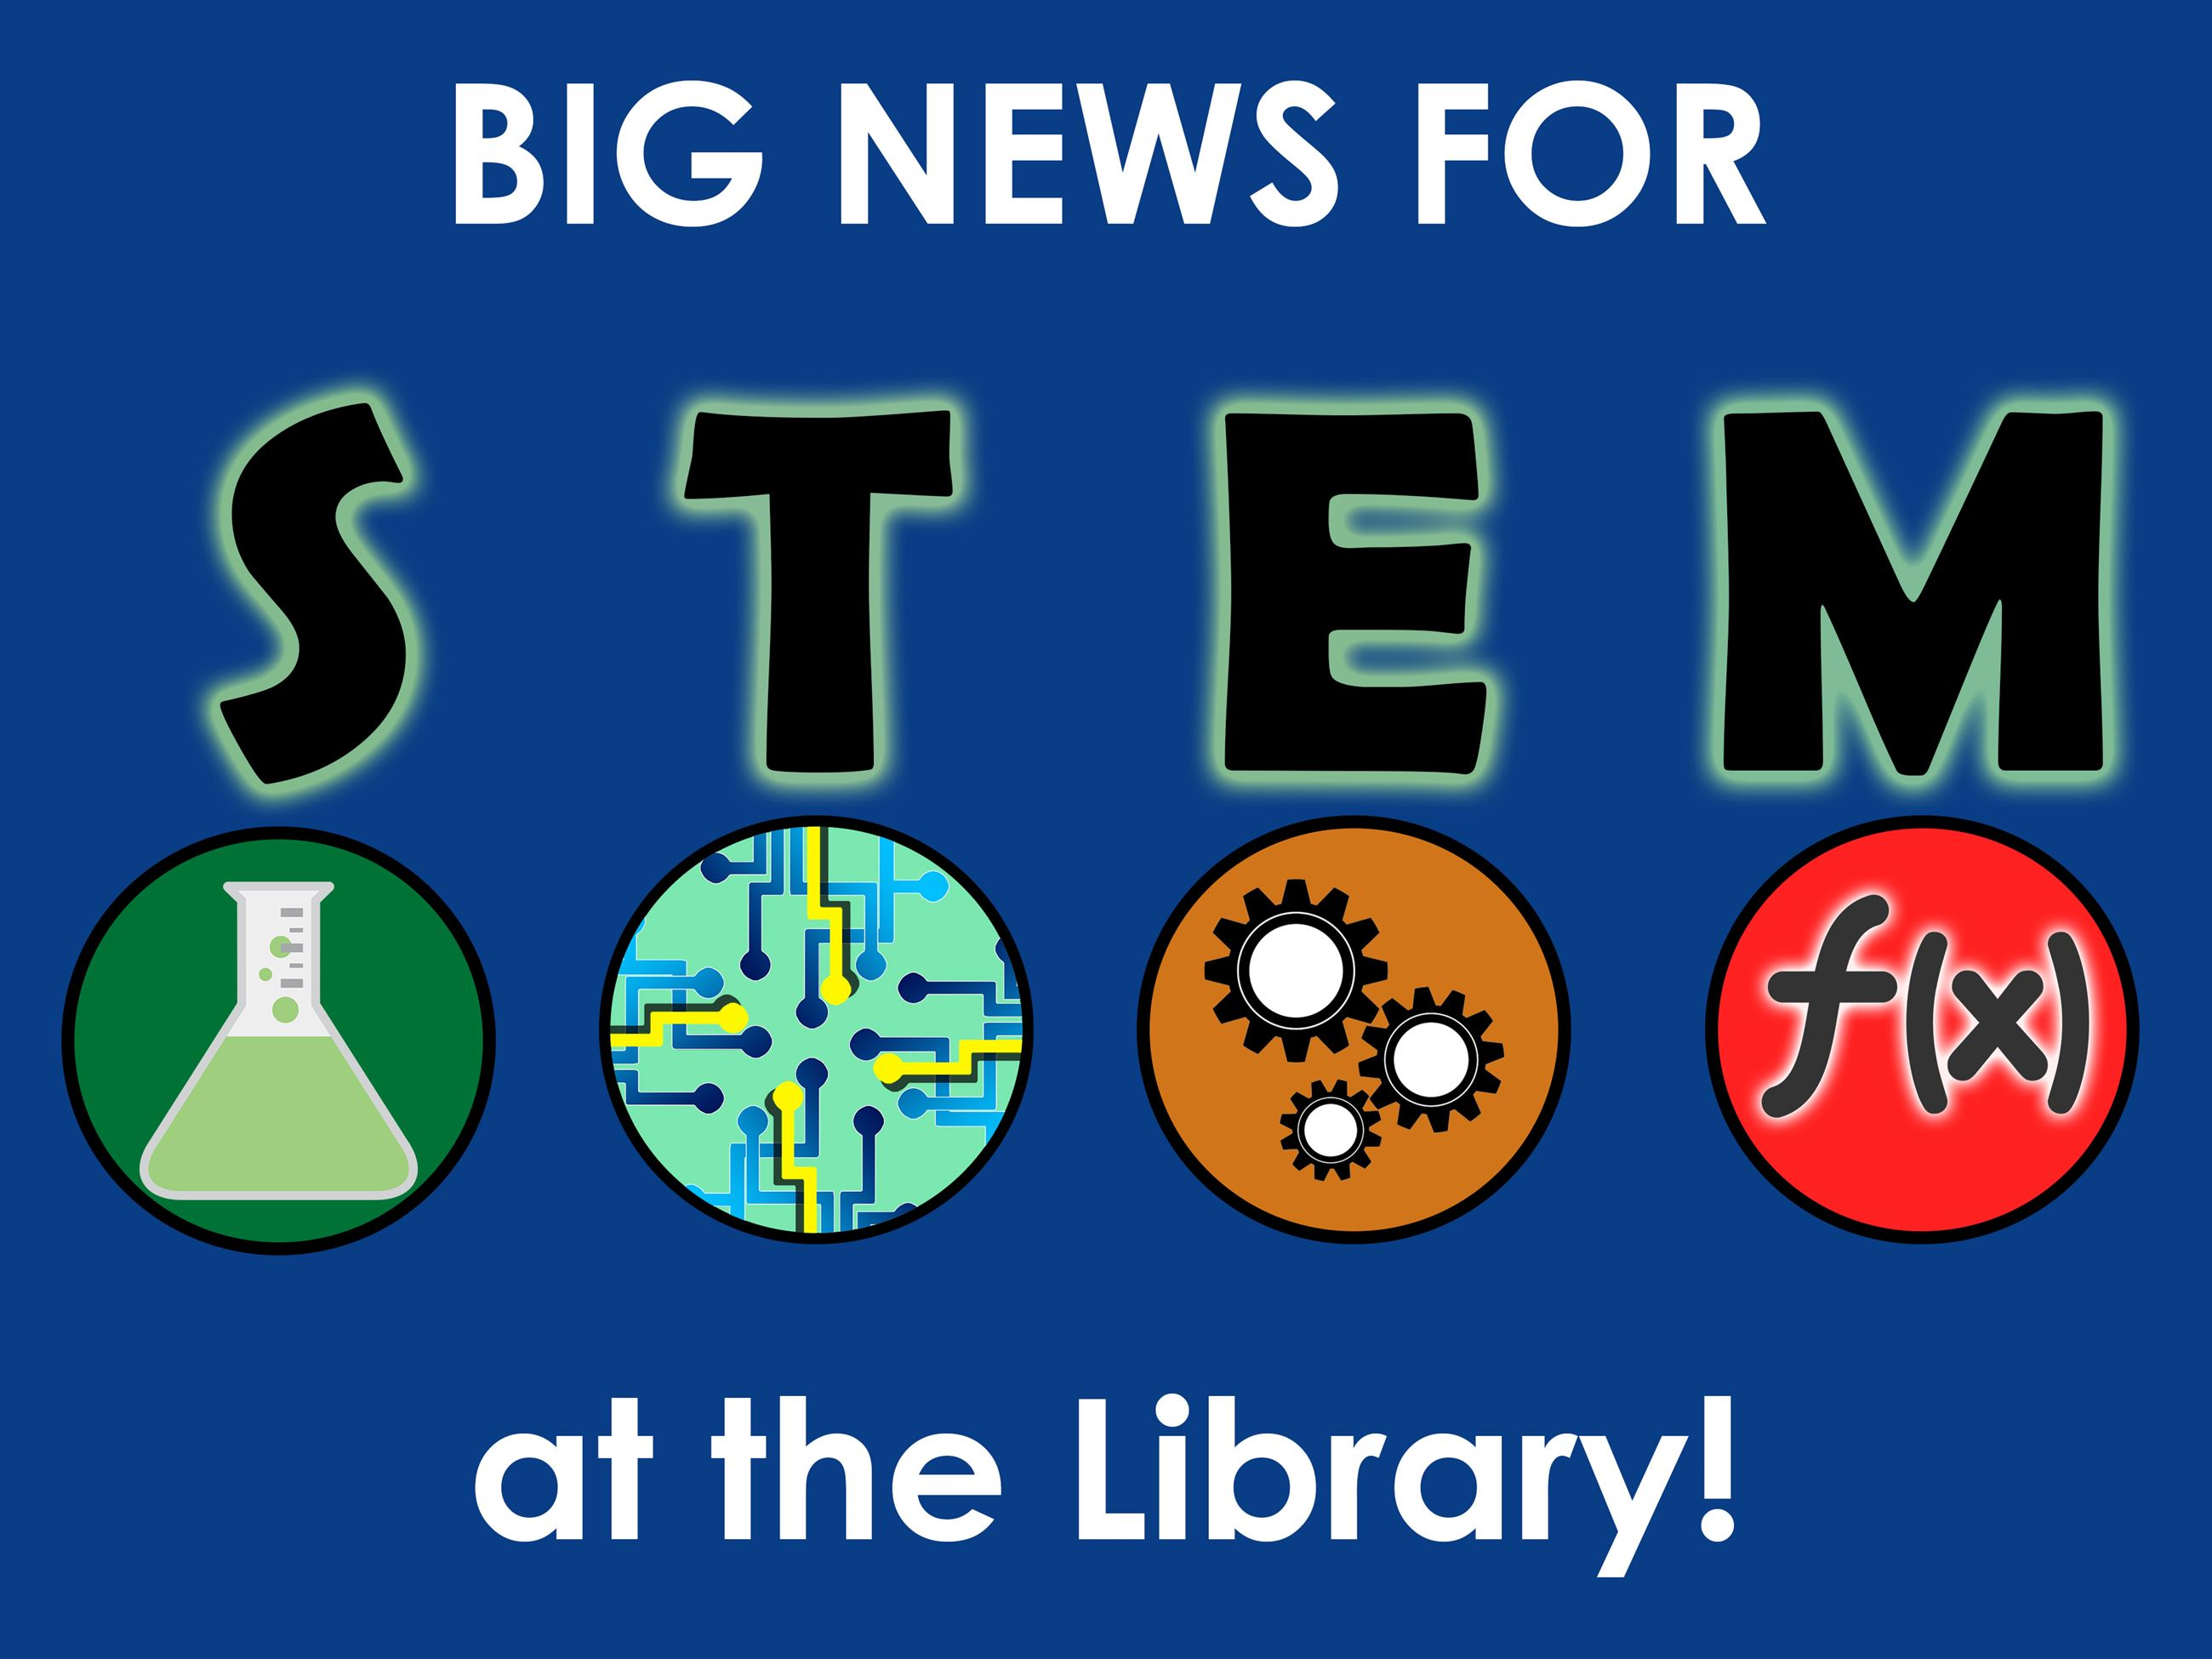 Big News for STEM at the Roswell Public Library